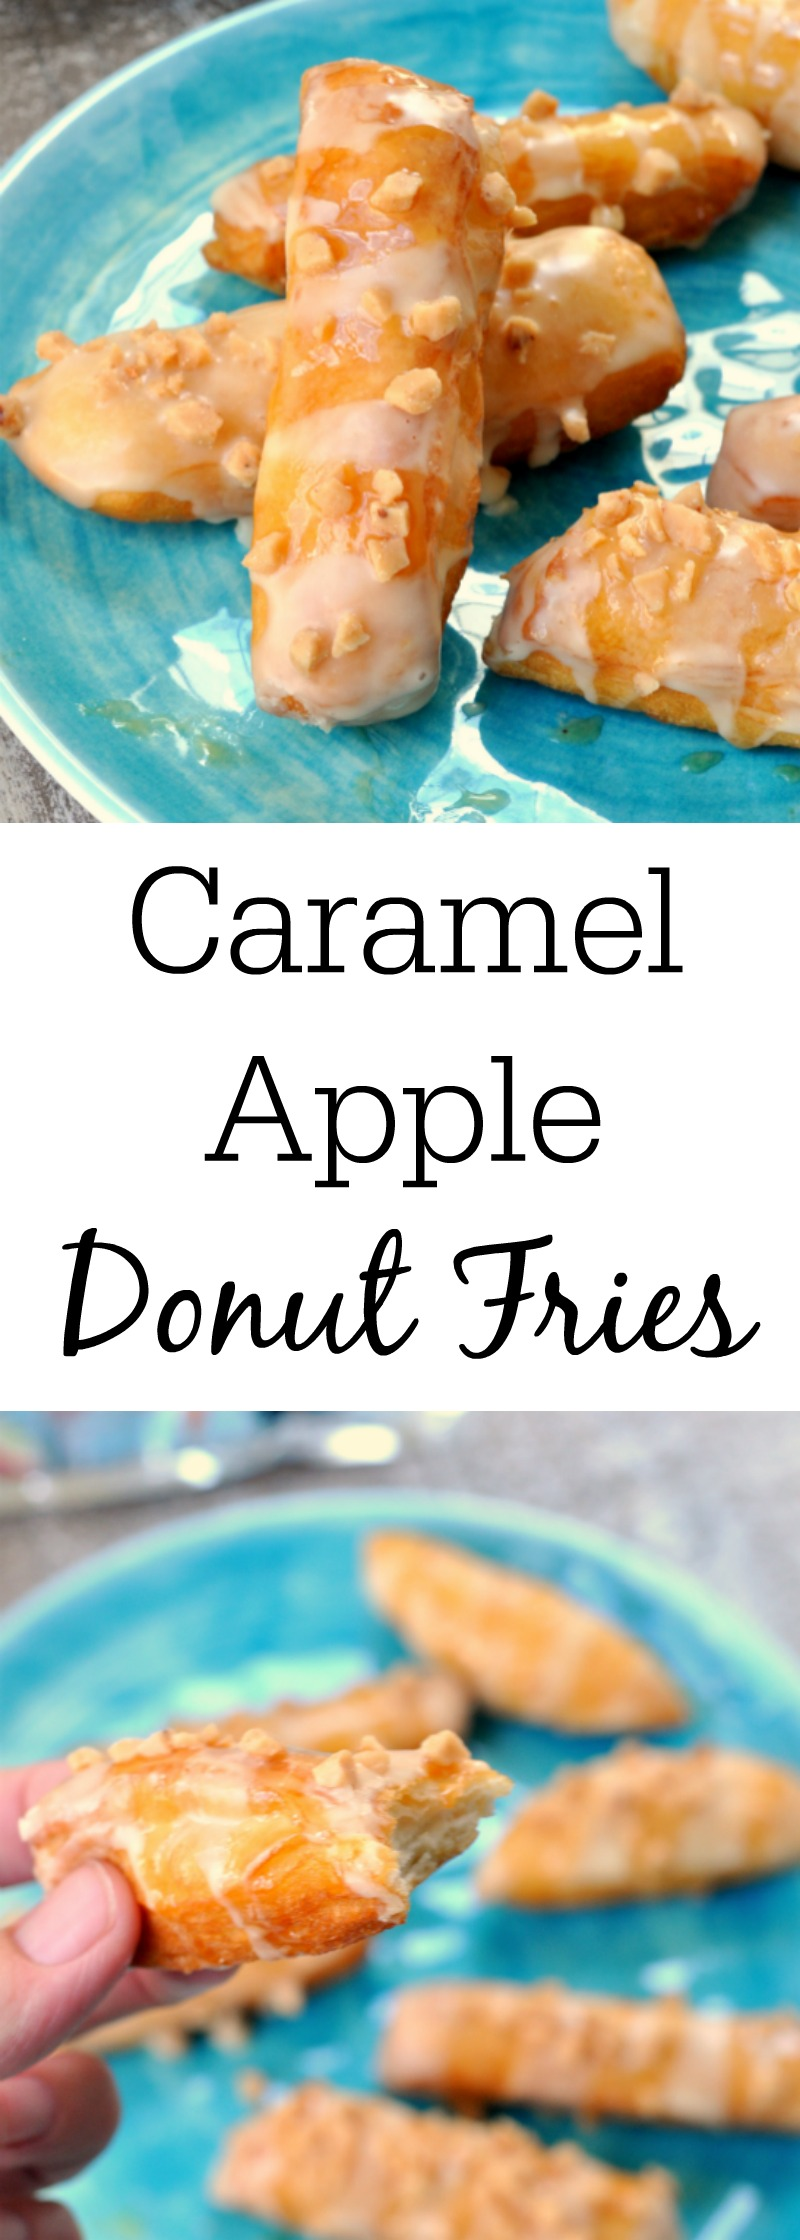 Caramel Apple Donut Fries